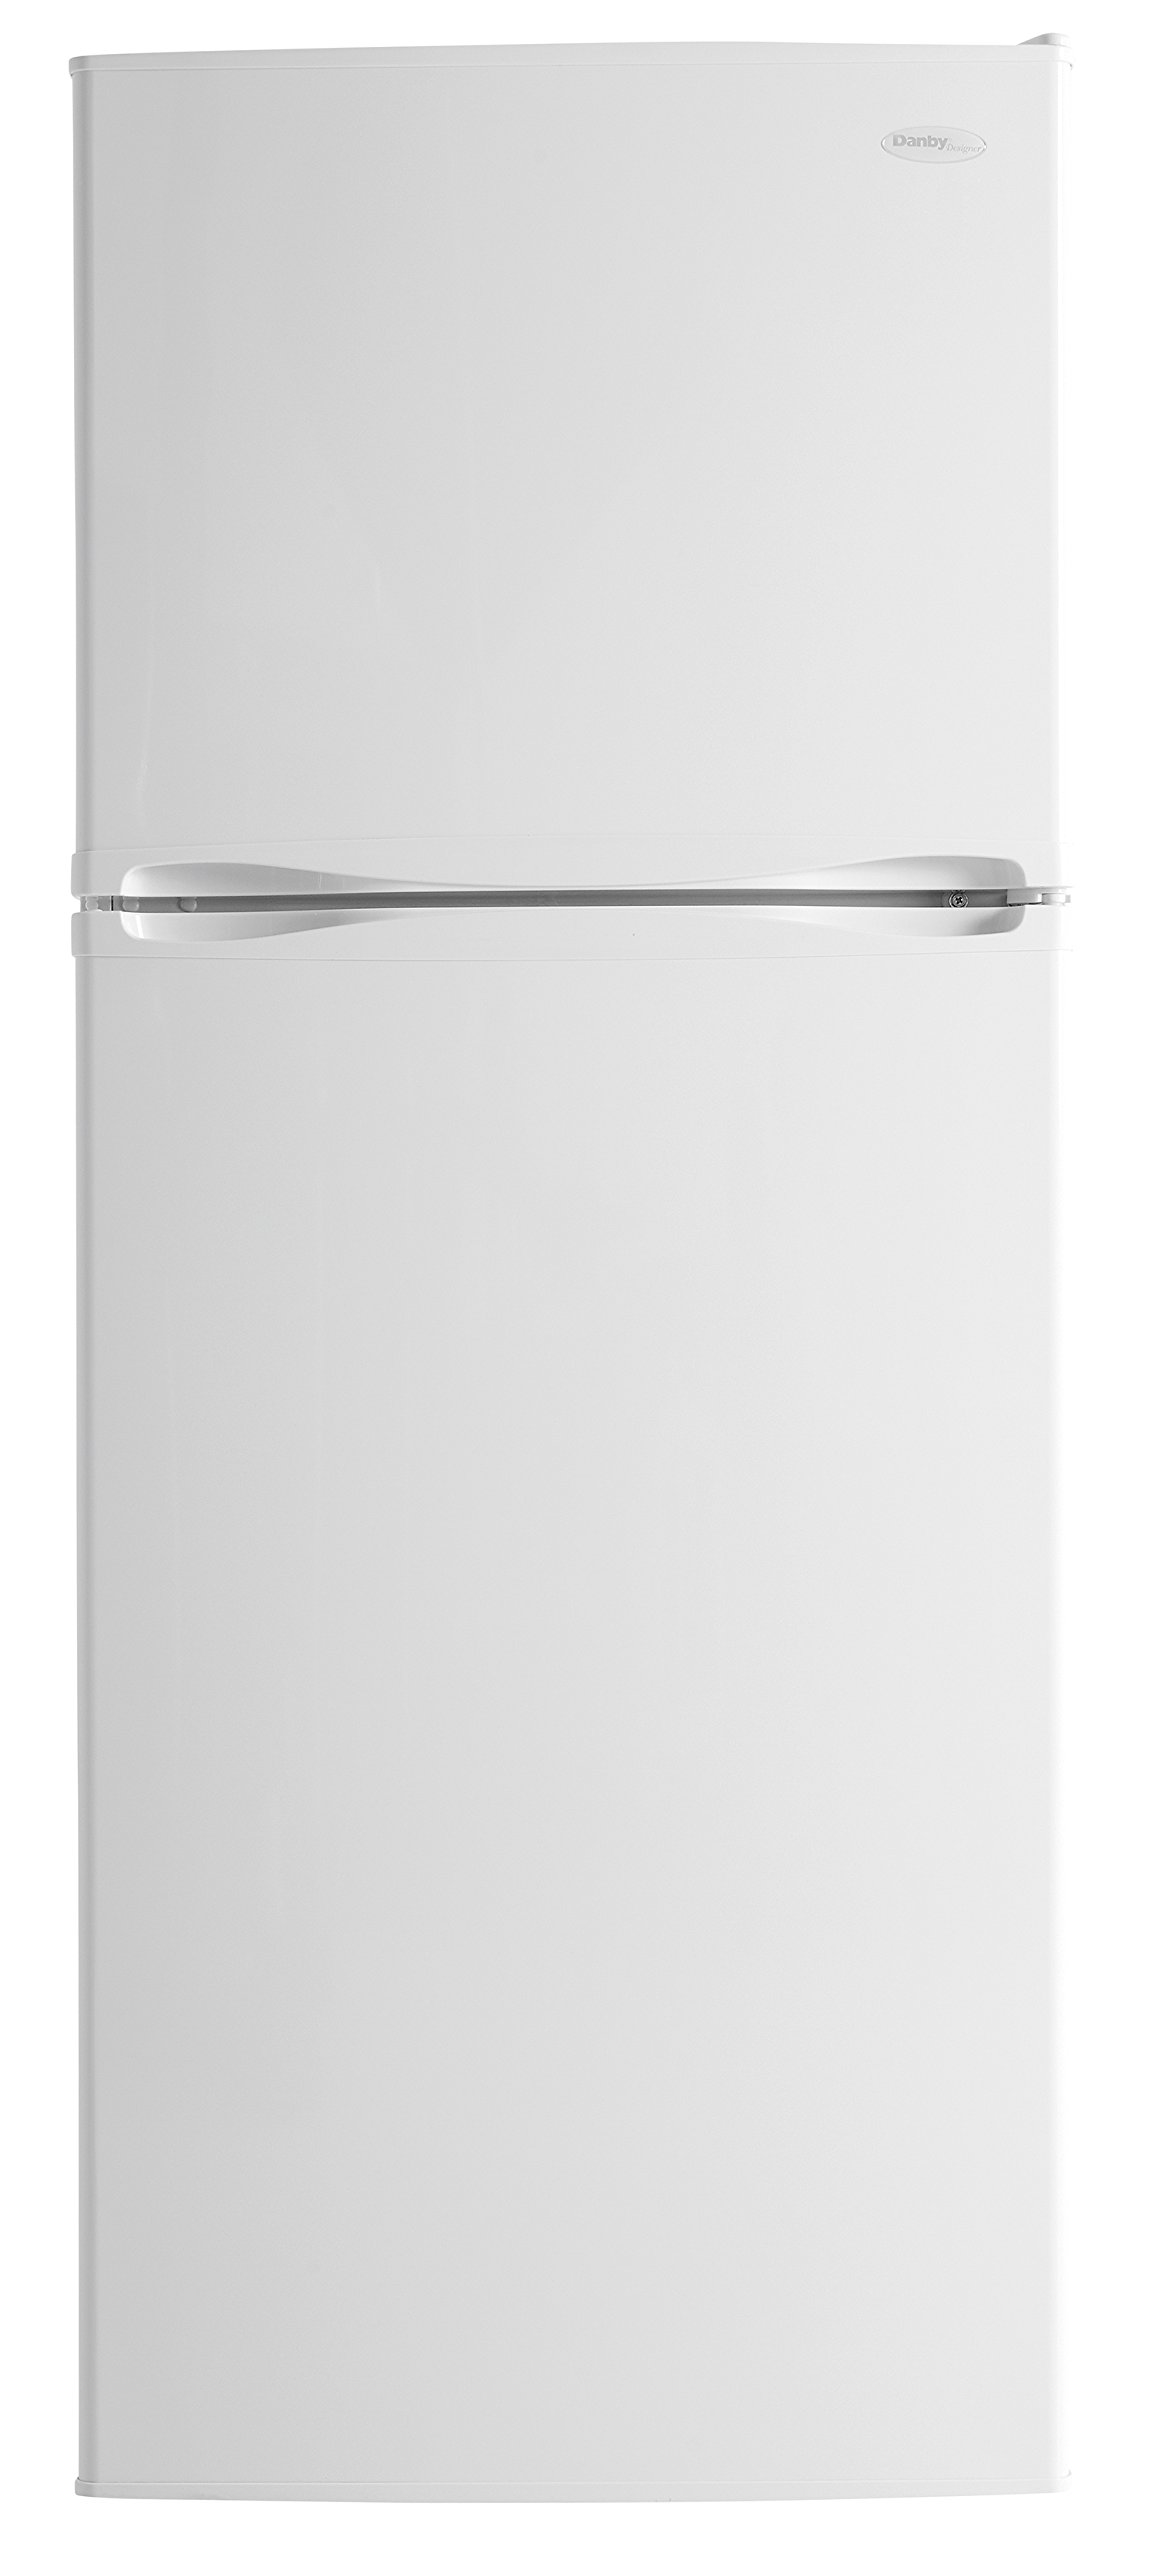 Danby DFF100C2WDD Frost-Free Refrigerator with Top-Mount Freezer, 9.9 Cubic Feet, White